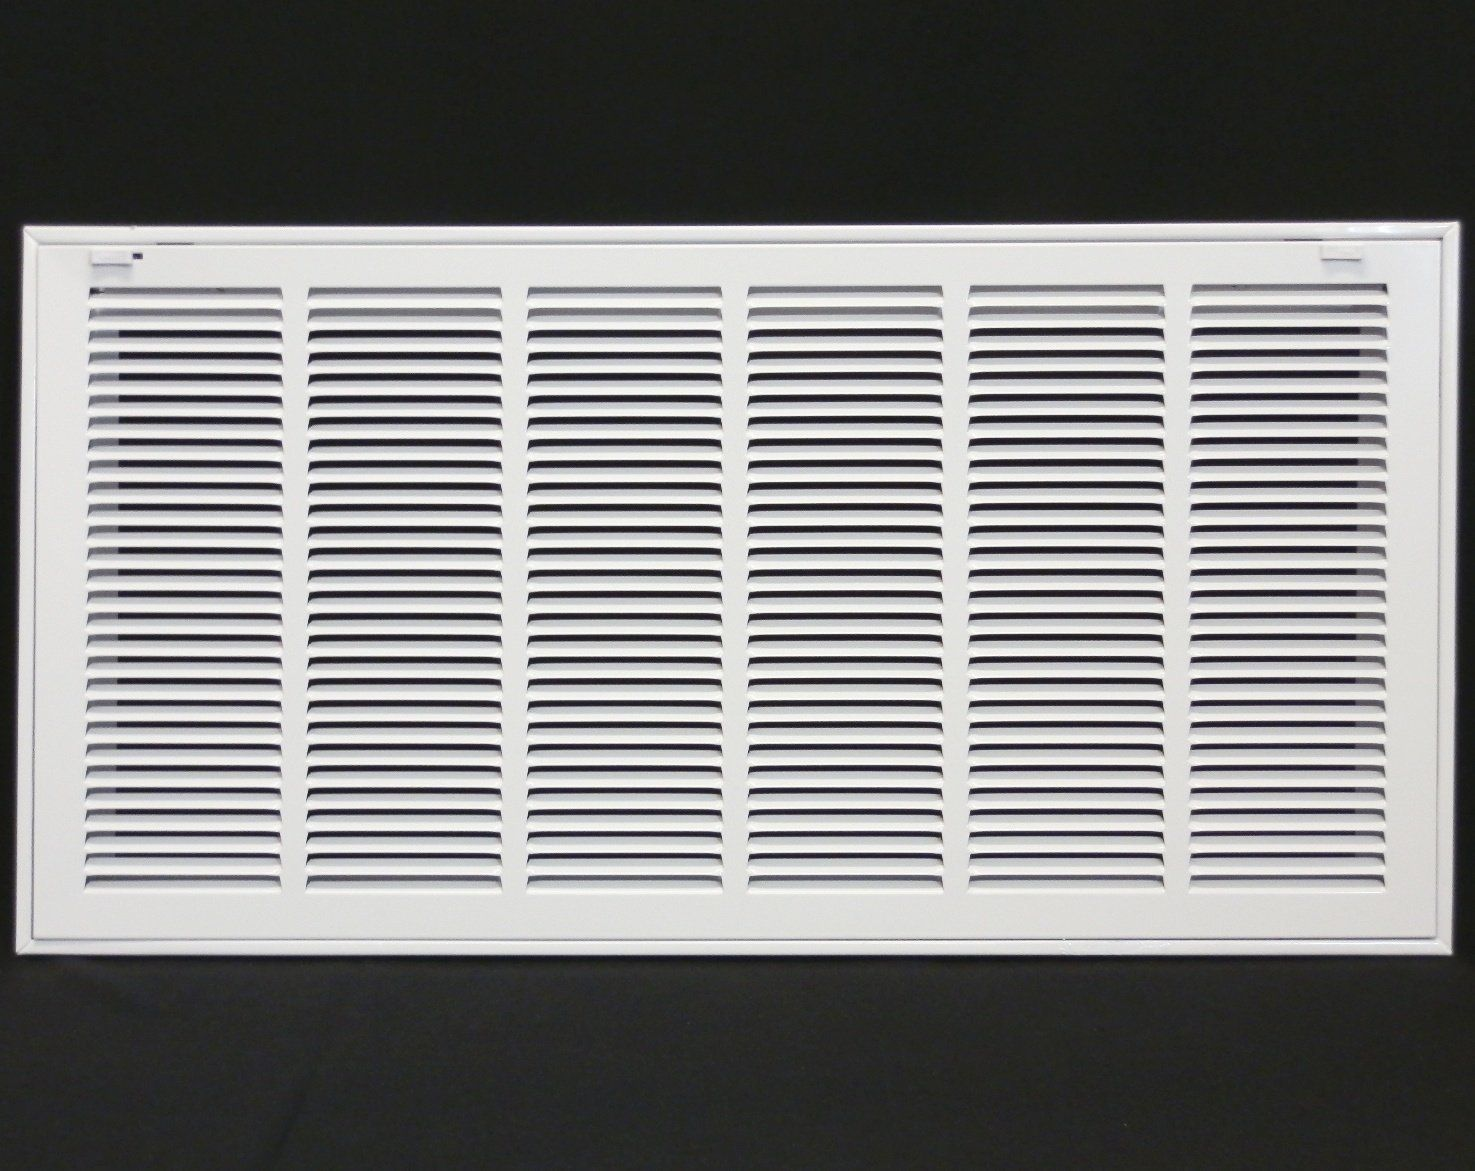 Metal Fab Mfrfg3012w 30 X 12 Steel Return Air Filter Grille For 1 Filter Hvac Duct Cover Flat Stamped Face White Outer Dimensi Filters Hvac Duct Grilles